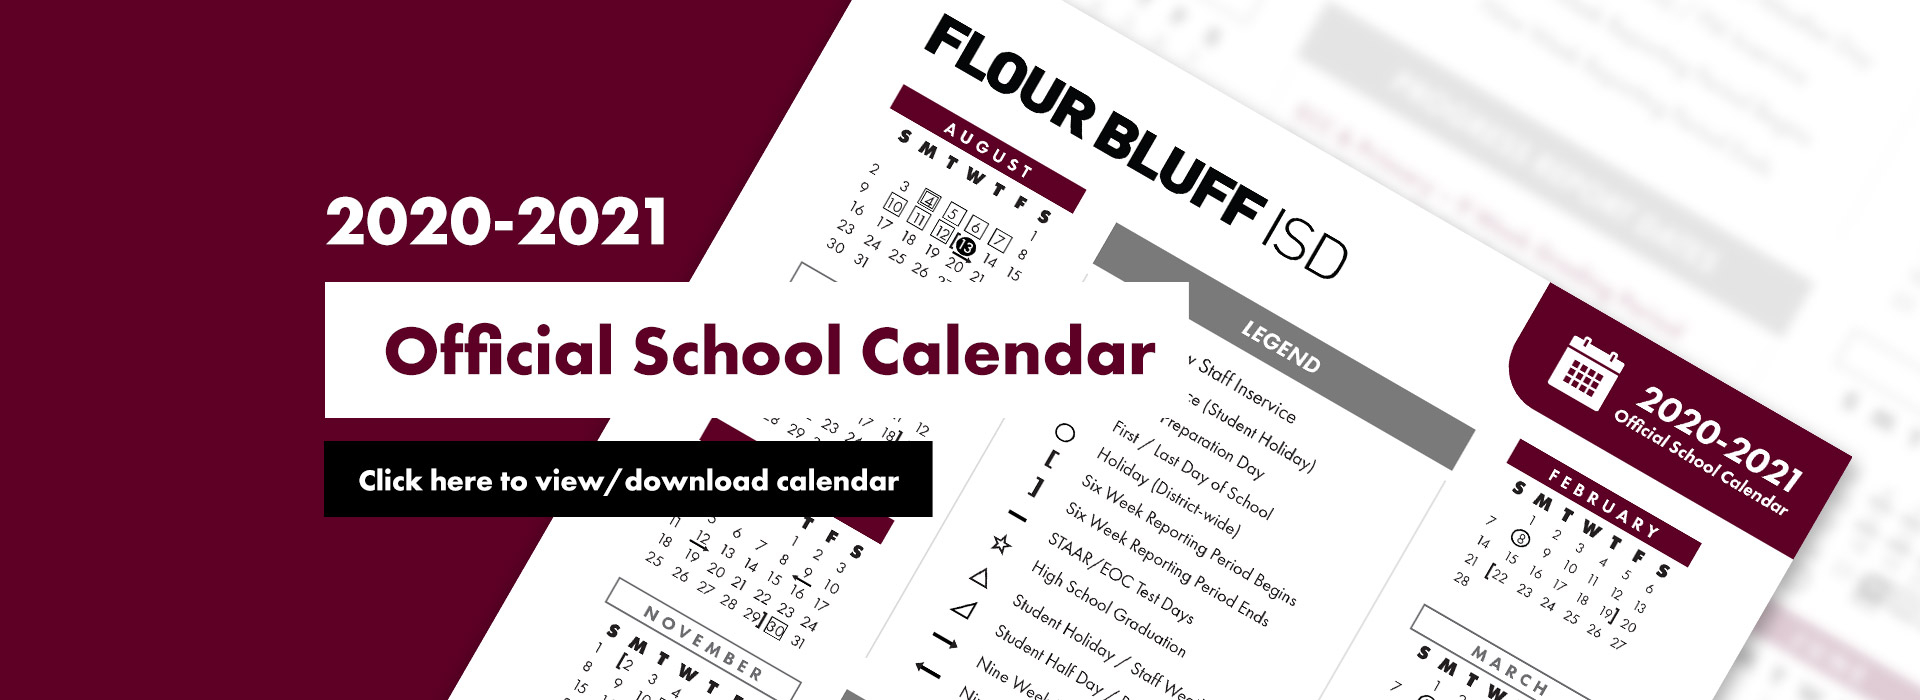 Flour Bluff High School Pertaining To Red Bluff High School Calendar 2021  2020